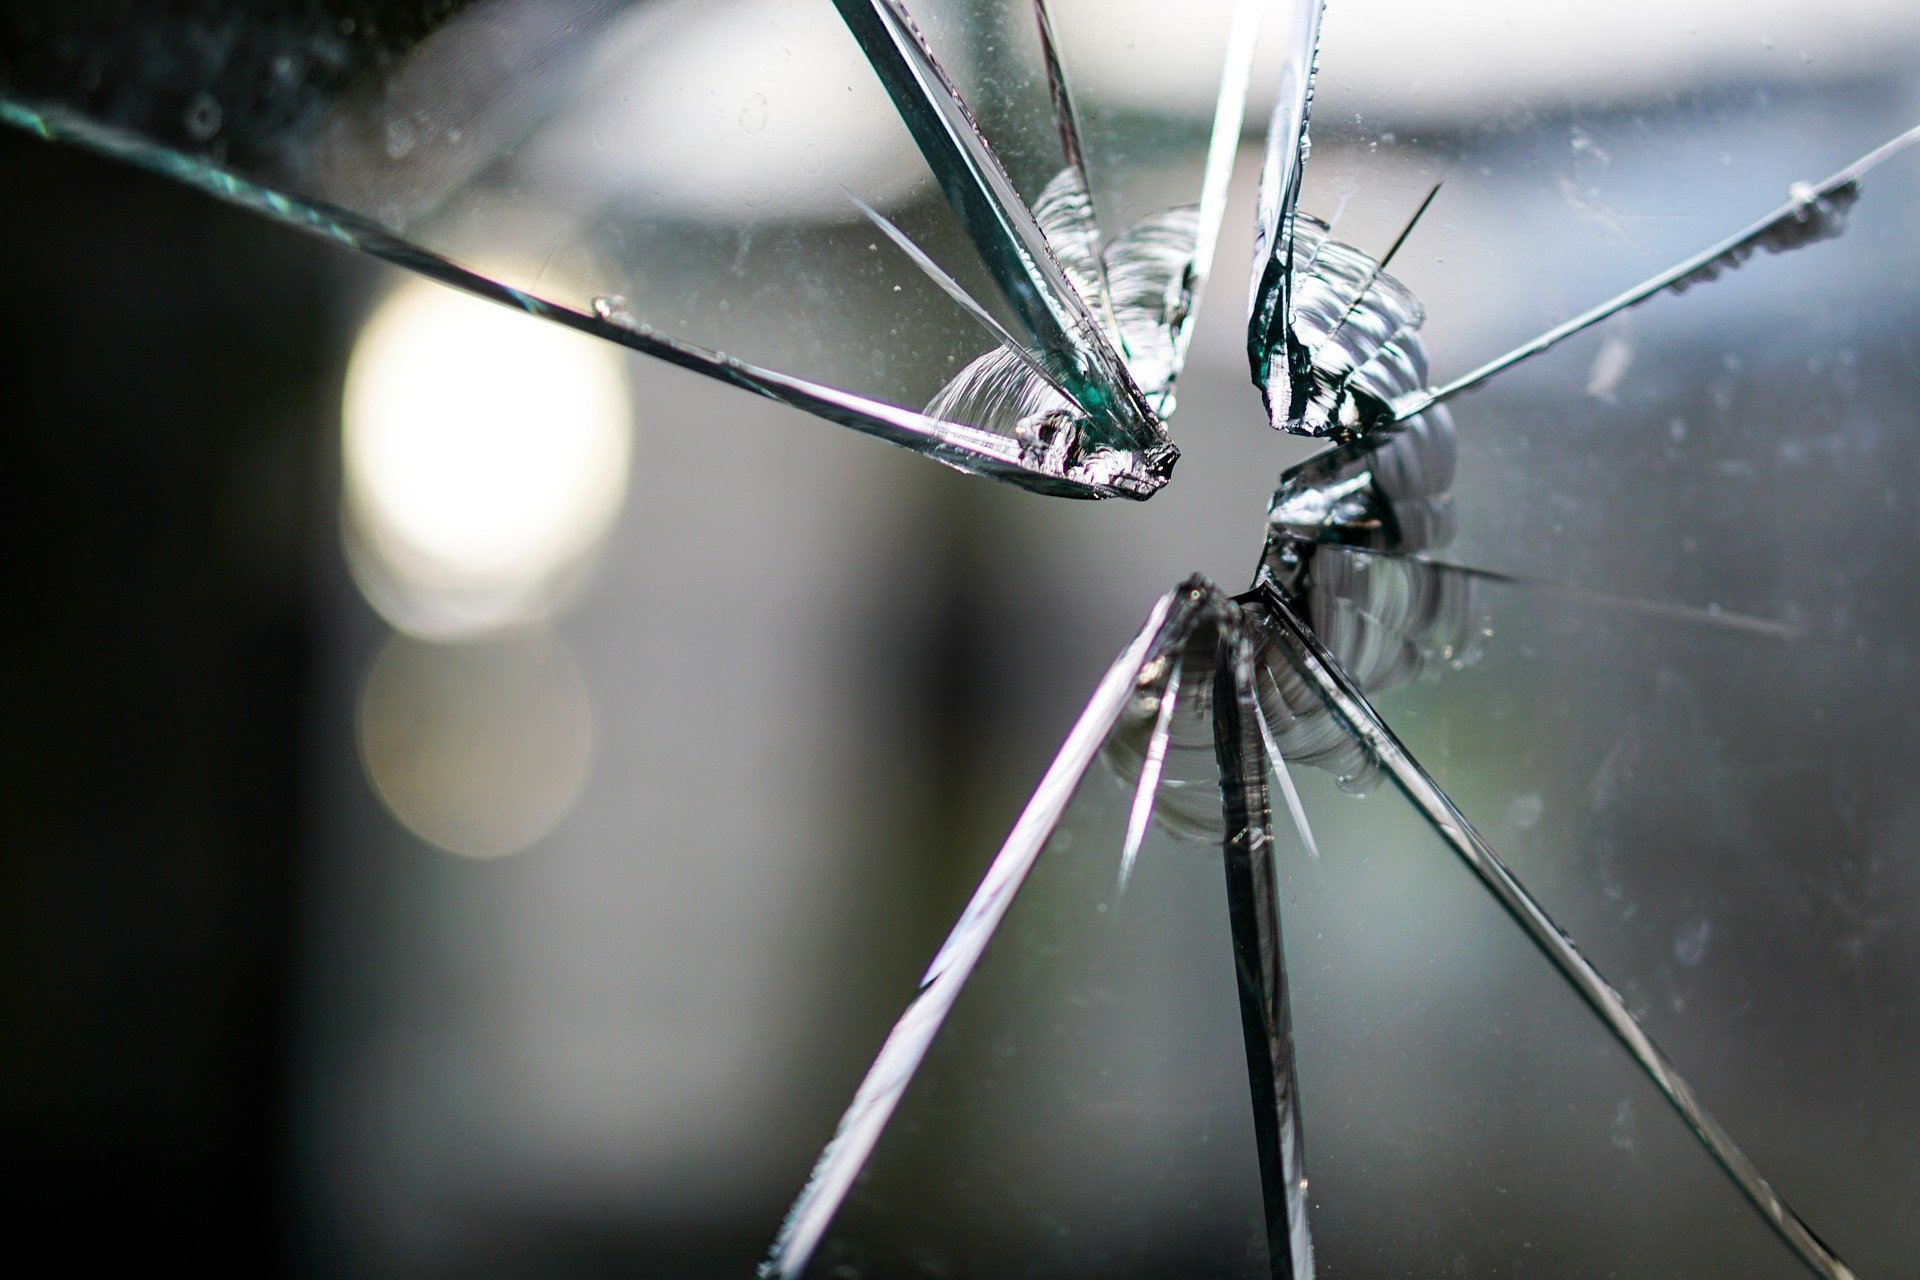 shattered glass, Arizona crime rates compared to other states